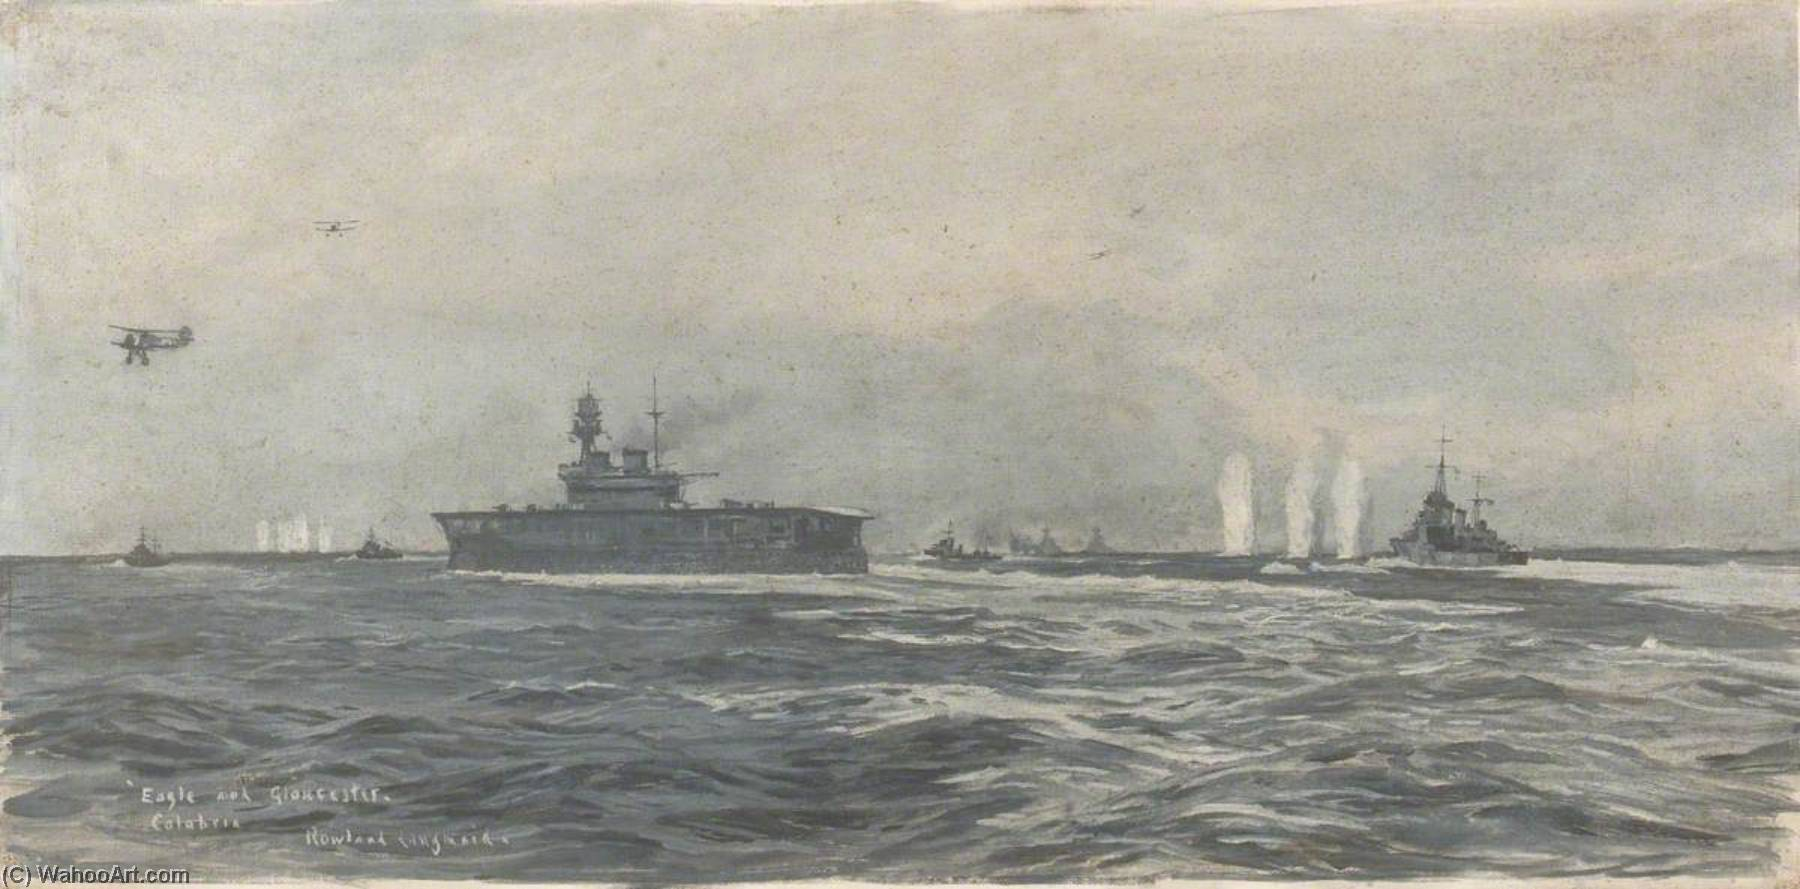 HMS `Eagle` and `Gloucester` off Calabria, 9 July 1940 by Rowland Langmaid | Art Reproduction | ArtsDot.com